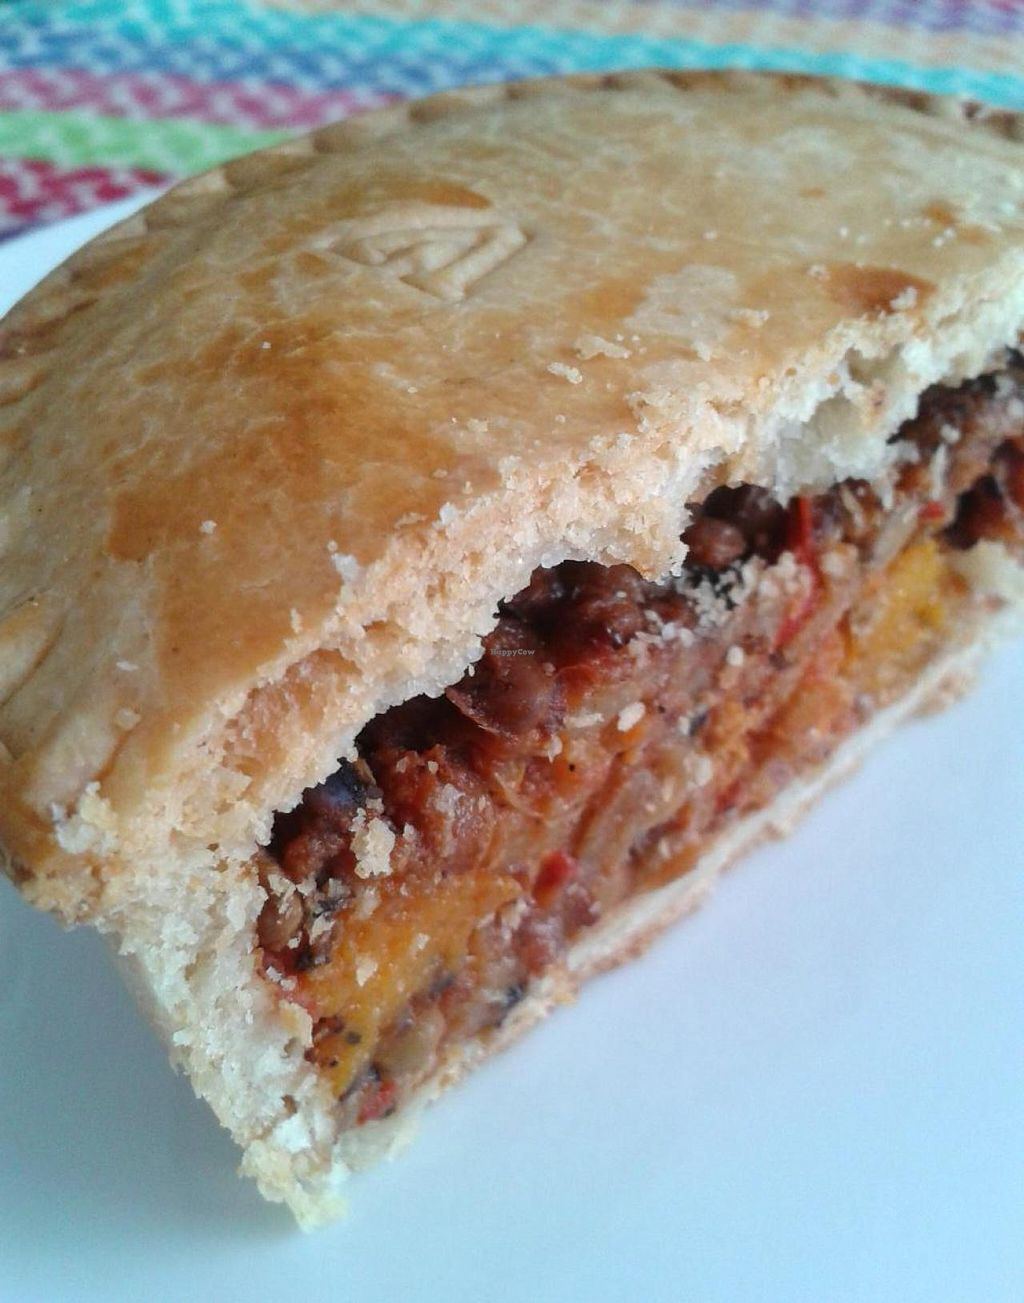 """Photo of Pasticcio Vegan Pies  by <a href=""""/members/profile/NatashaV"""">NatashaV</a> <br/>Vegetable curry pie filling <br/> September 13, 2014  - <a href='/contact/abuse/image/49387/79791'>Report</a>"""